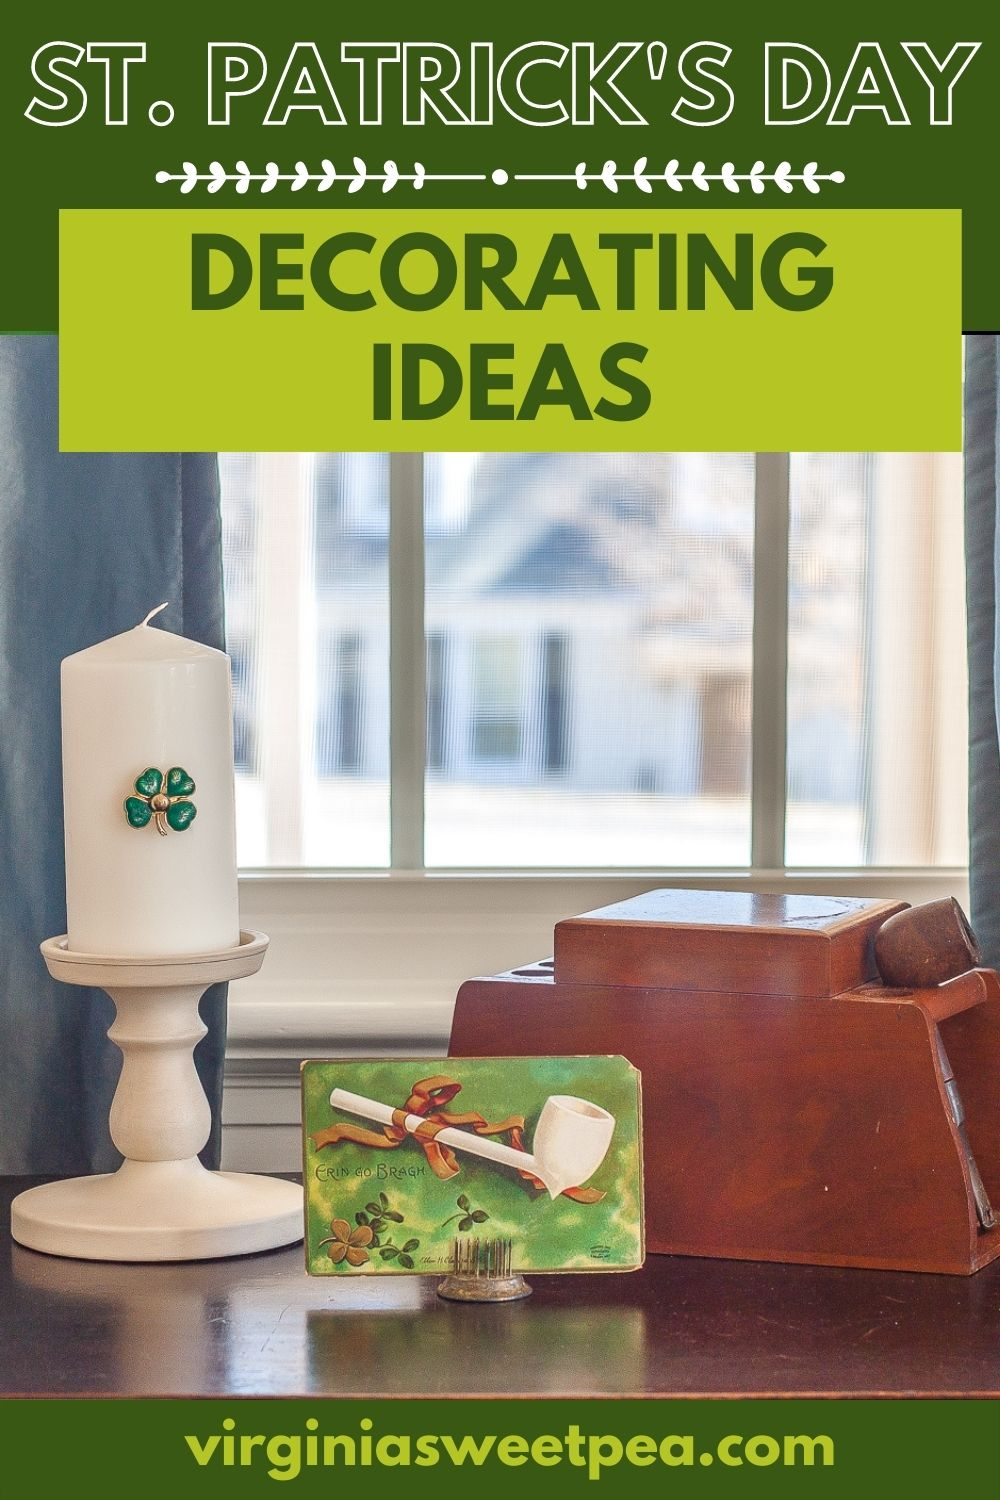 See ideas for how to decorate your home for St. Patrick's Day.  See creative vignettes that will inspire you to add some St. Patrick's Day decor to your home. via @spaula